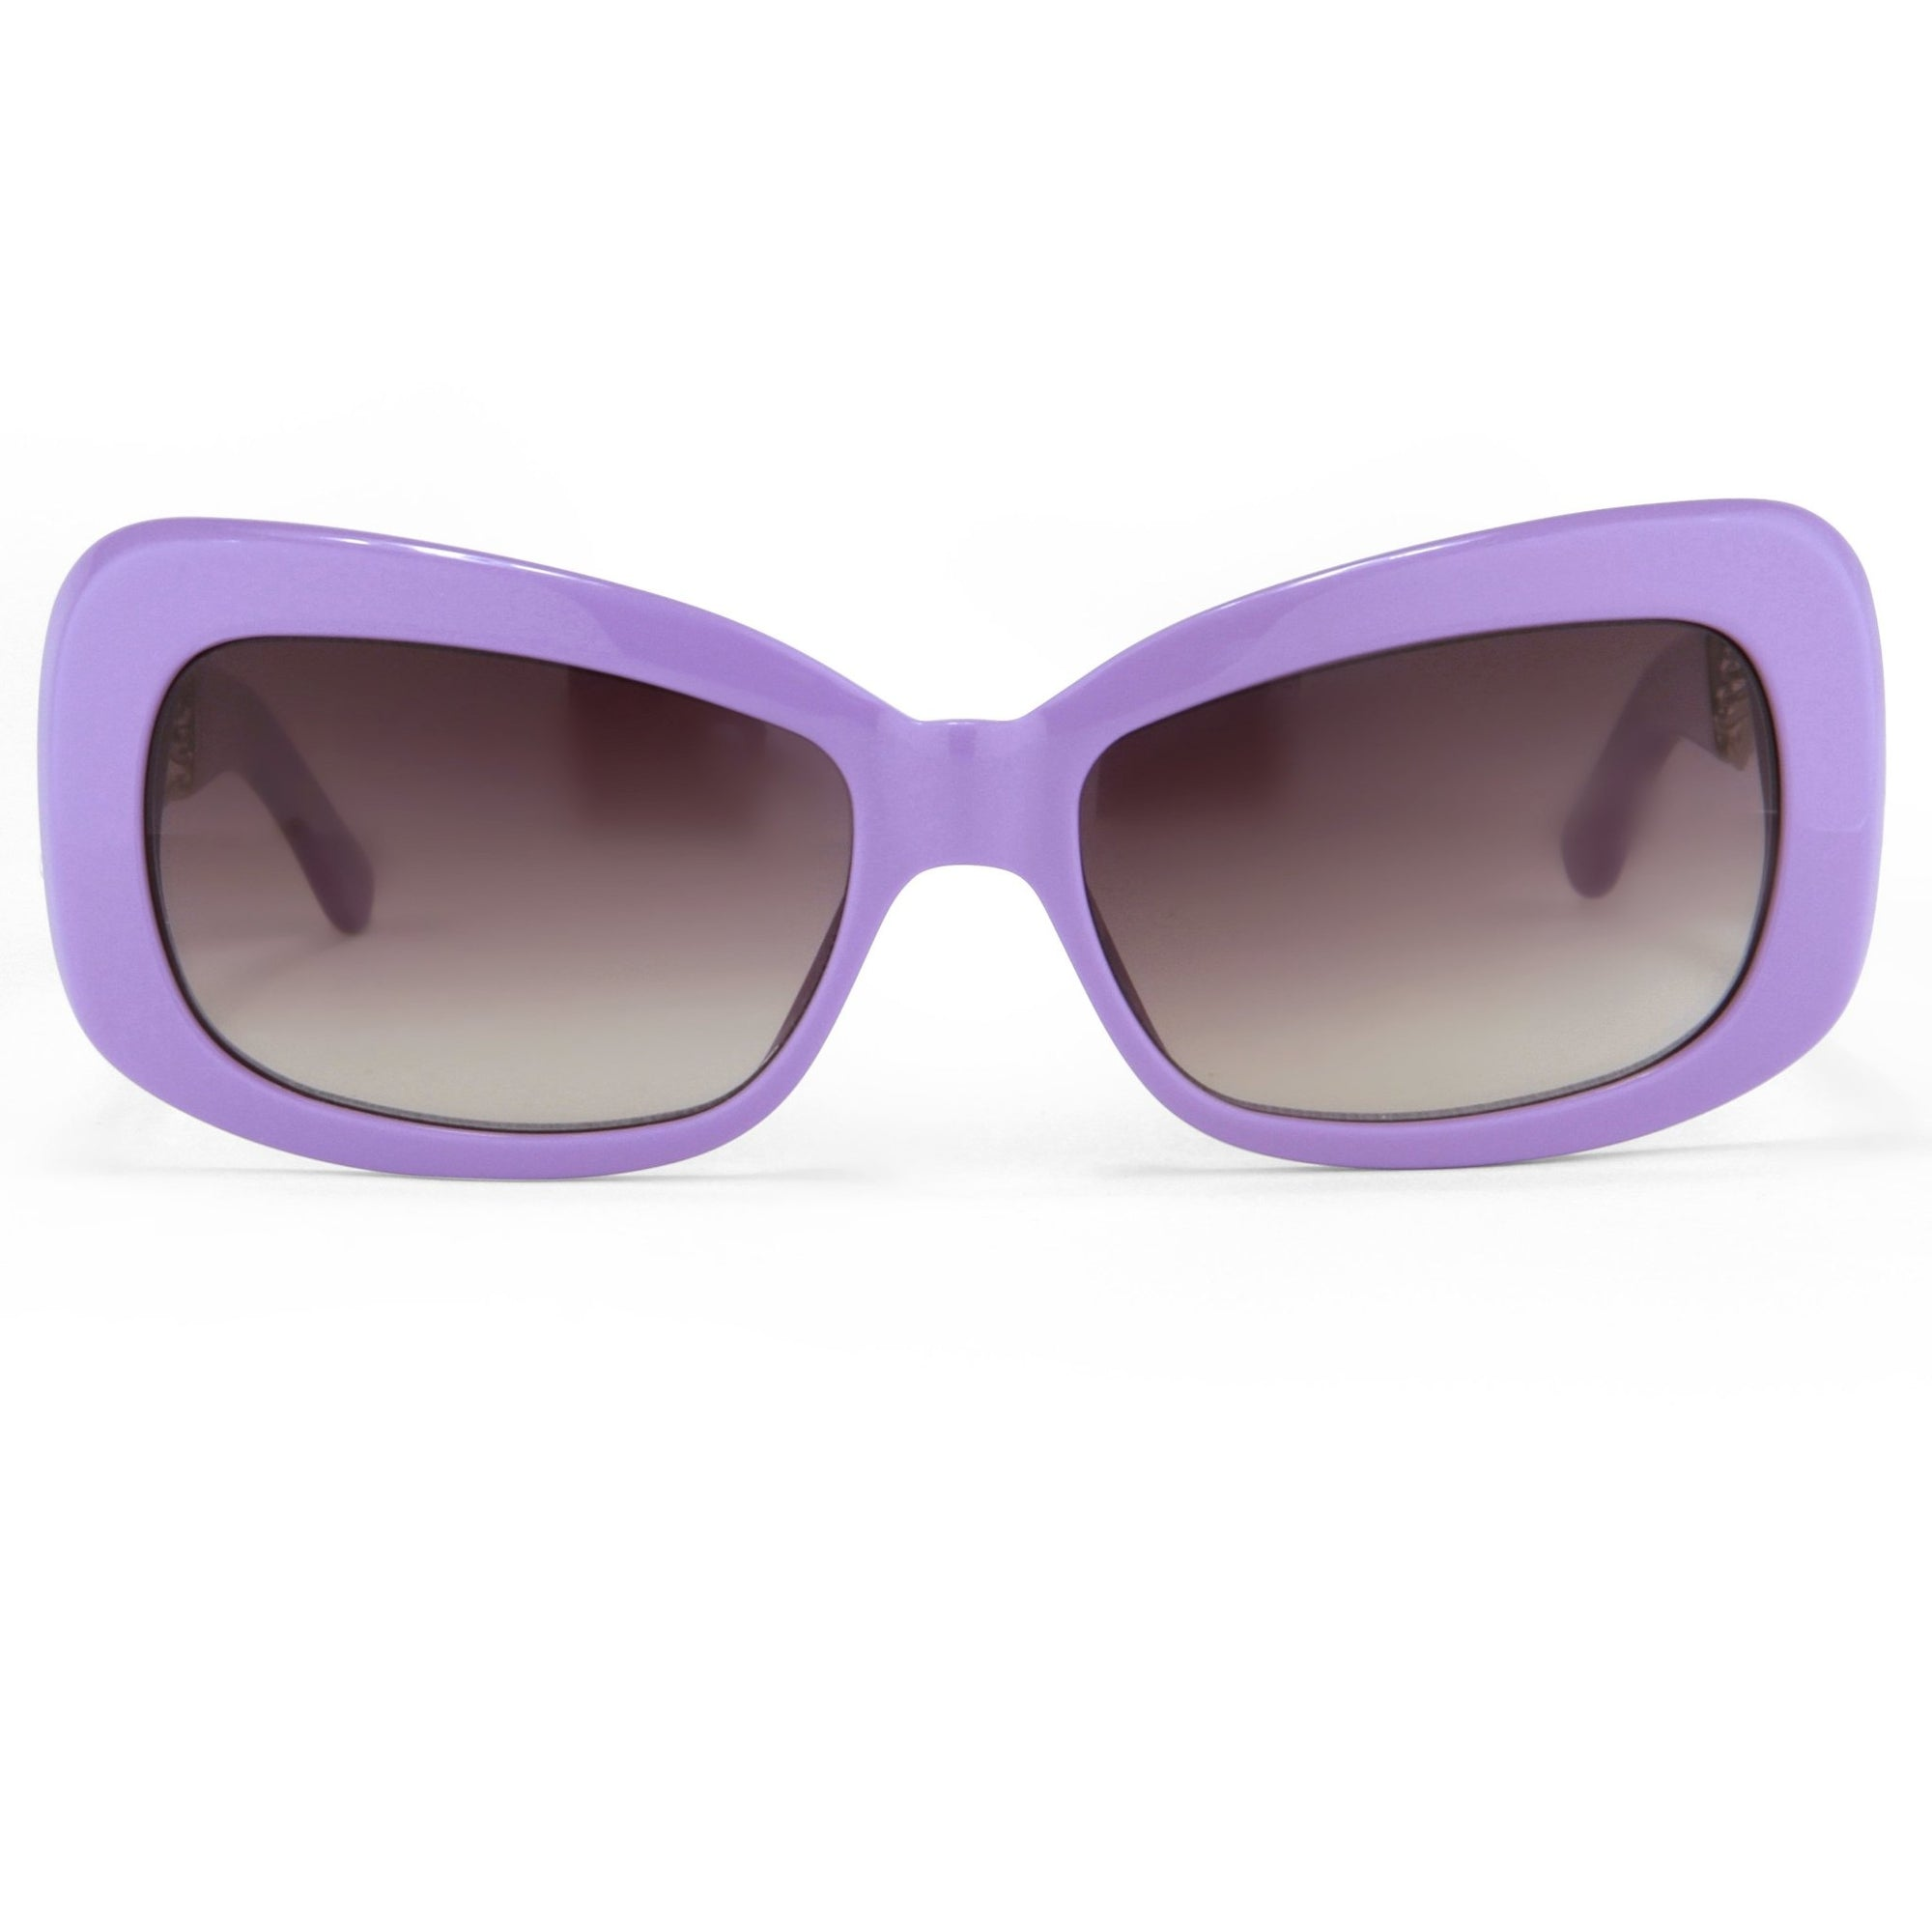 Prabal Gurung Sunglasses Female Rectangle Purple Acetate CAT2 Grey Lenses PG14C4SUN - Watches & Crystals